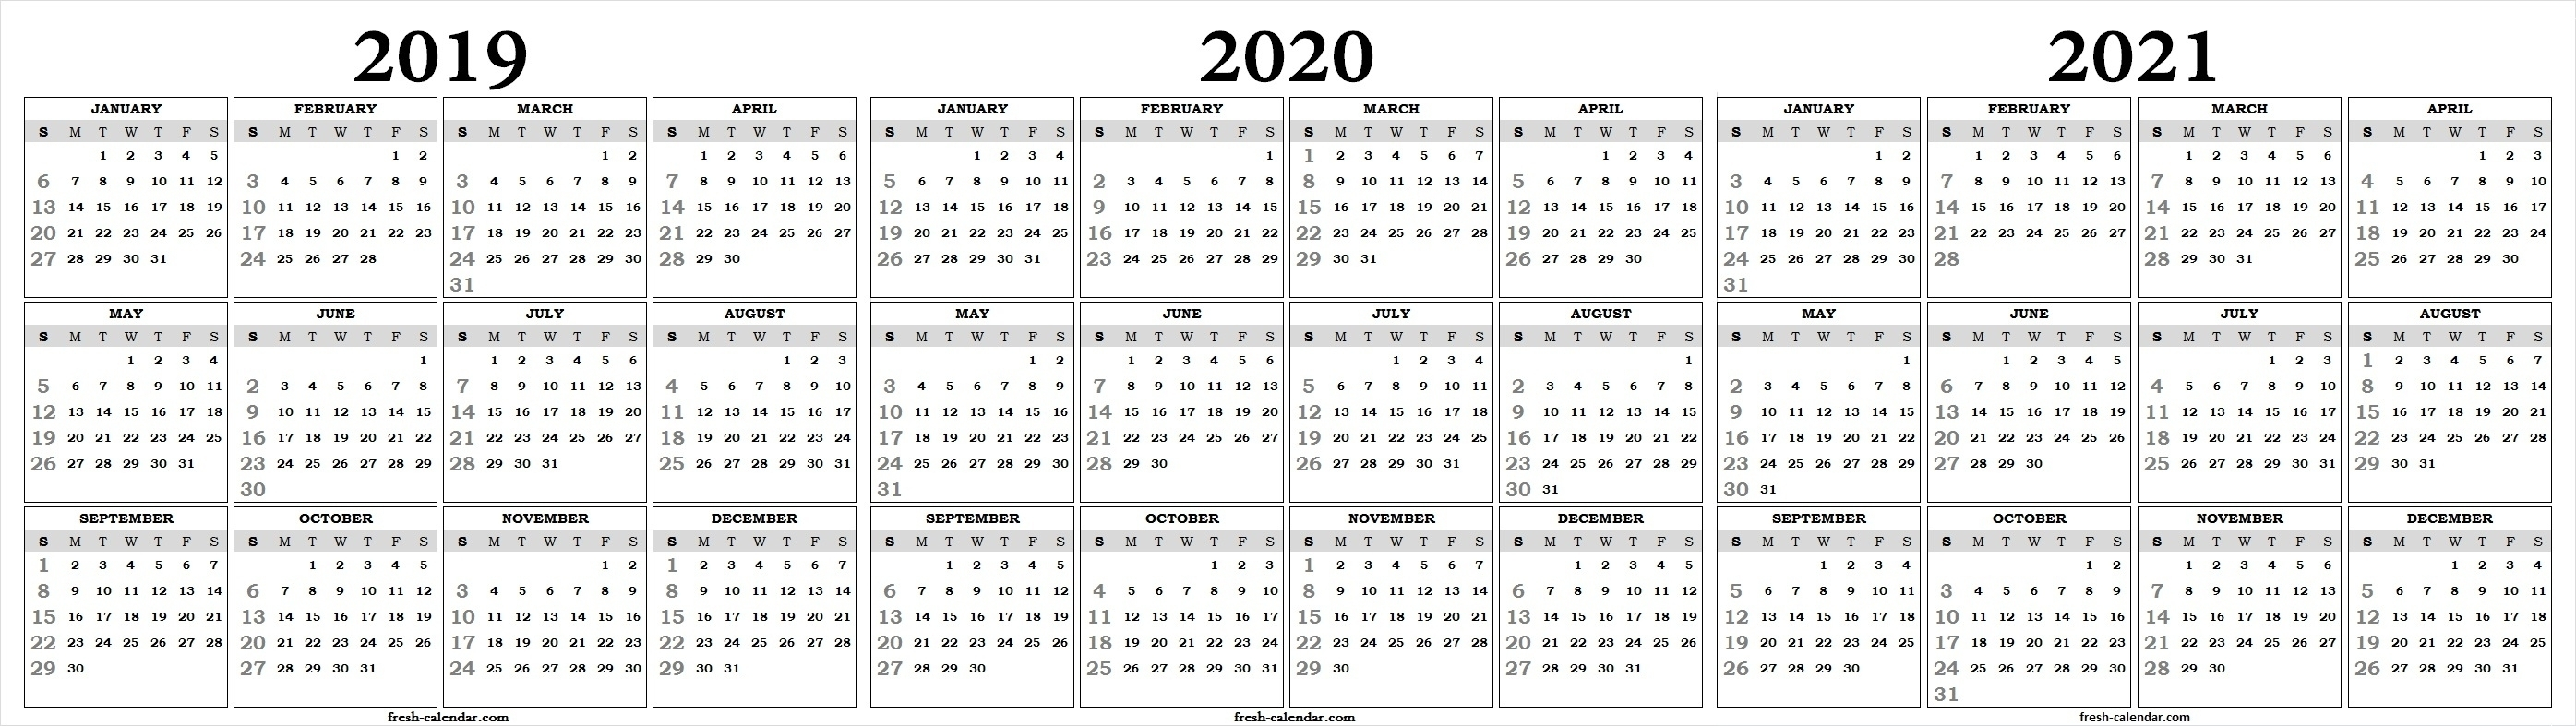 Perky 2020 Yearly Calendar One Page • Printable Blank Calendar Template pertaining to 2019 And 2020 Calendar One Page